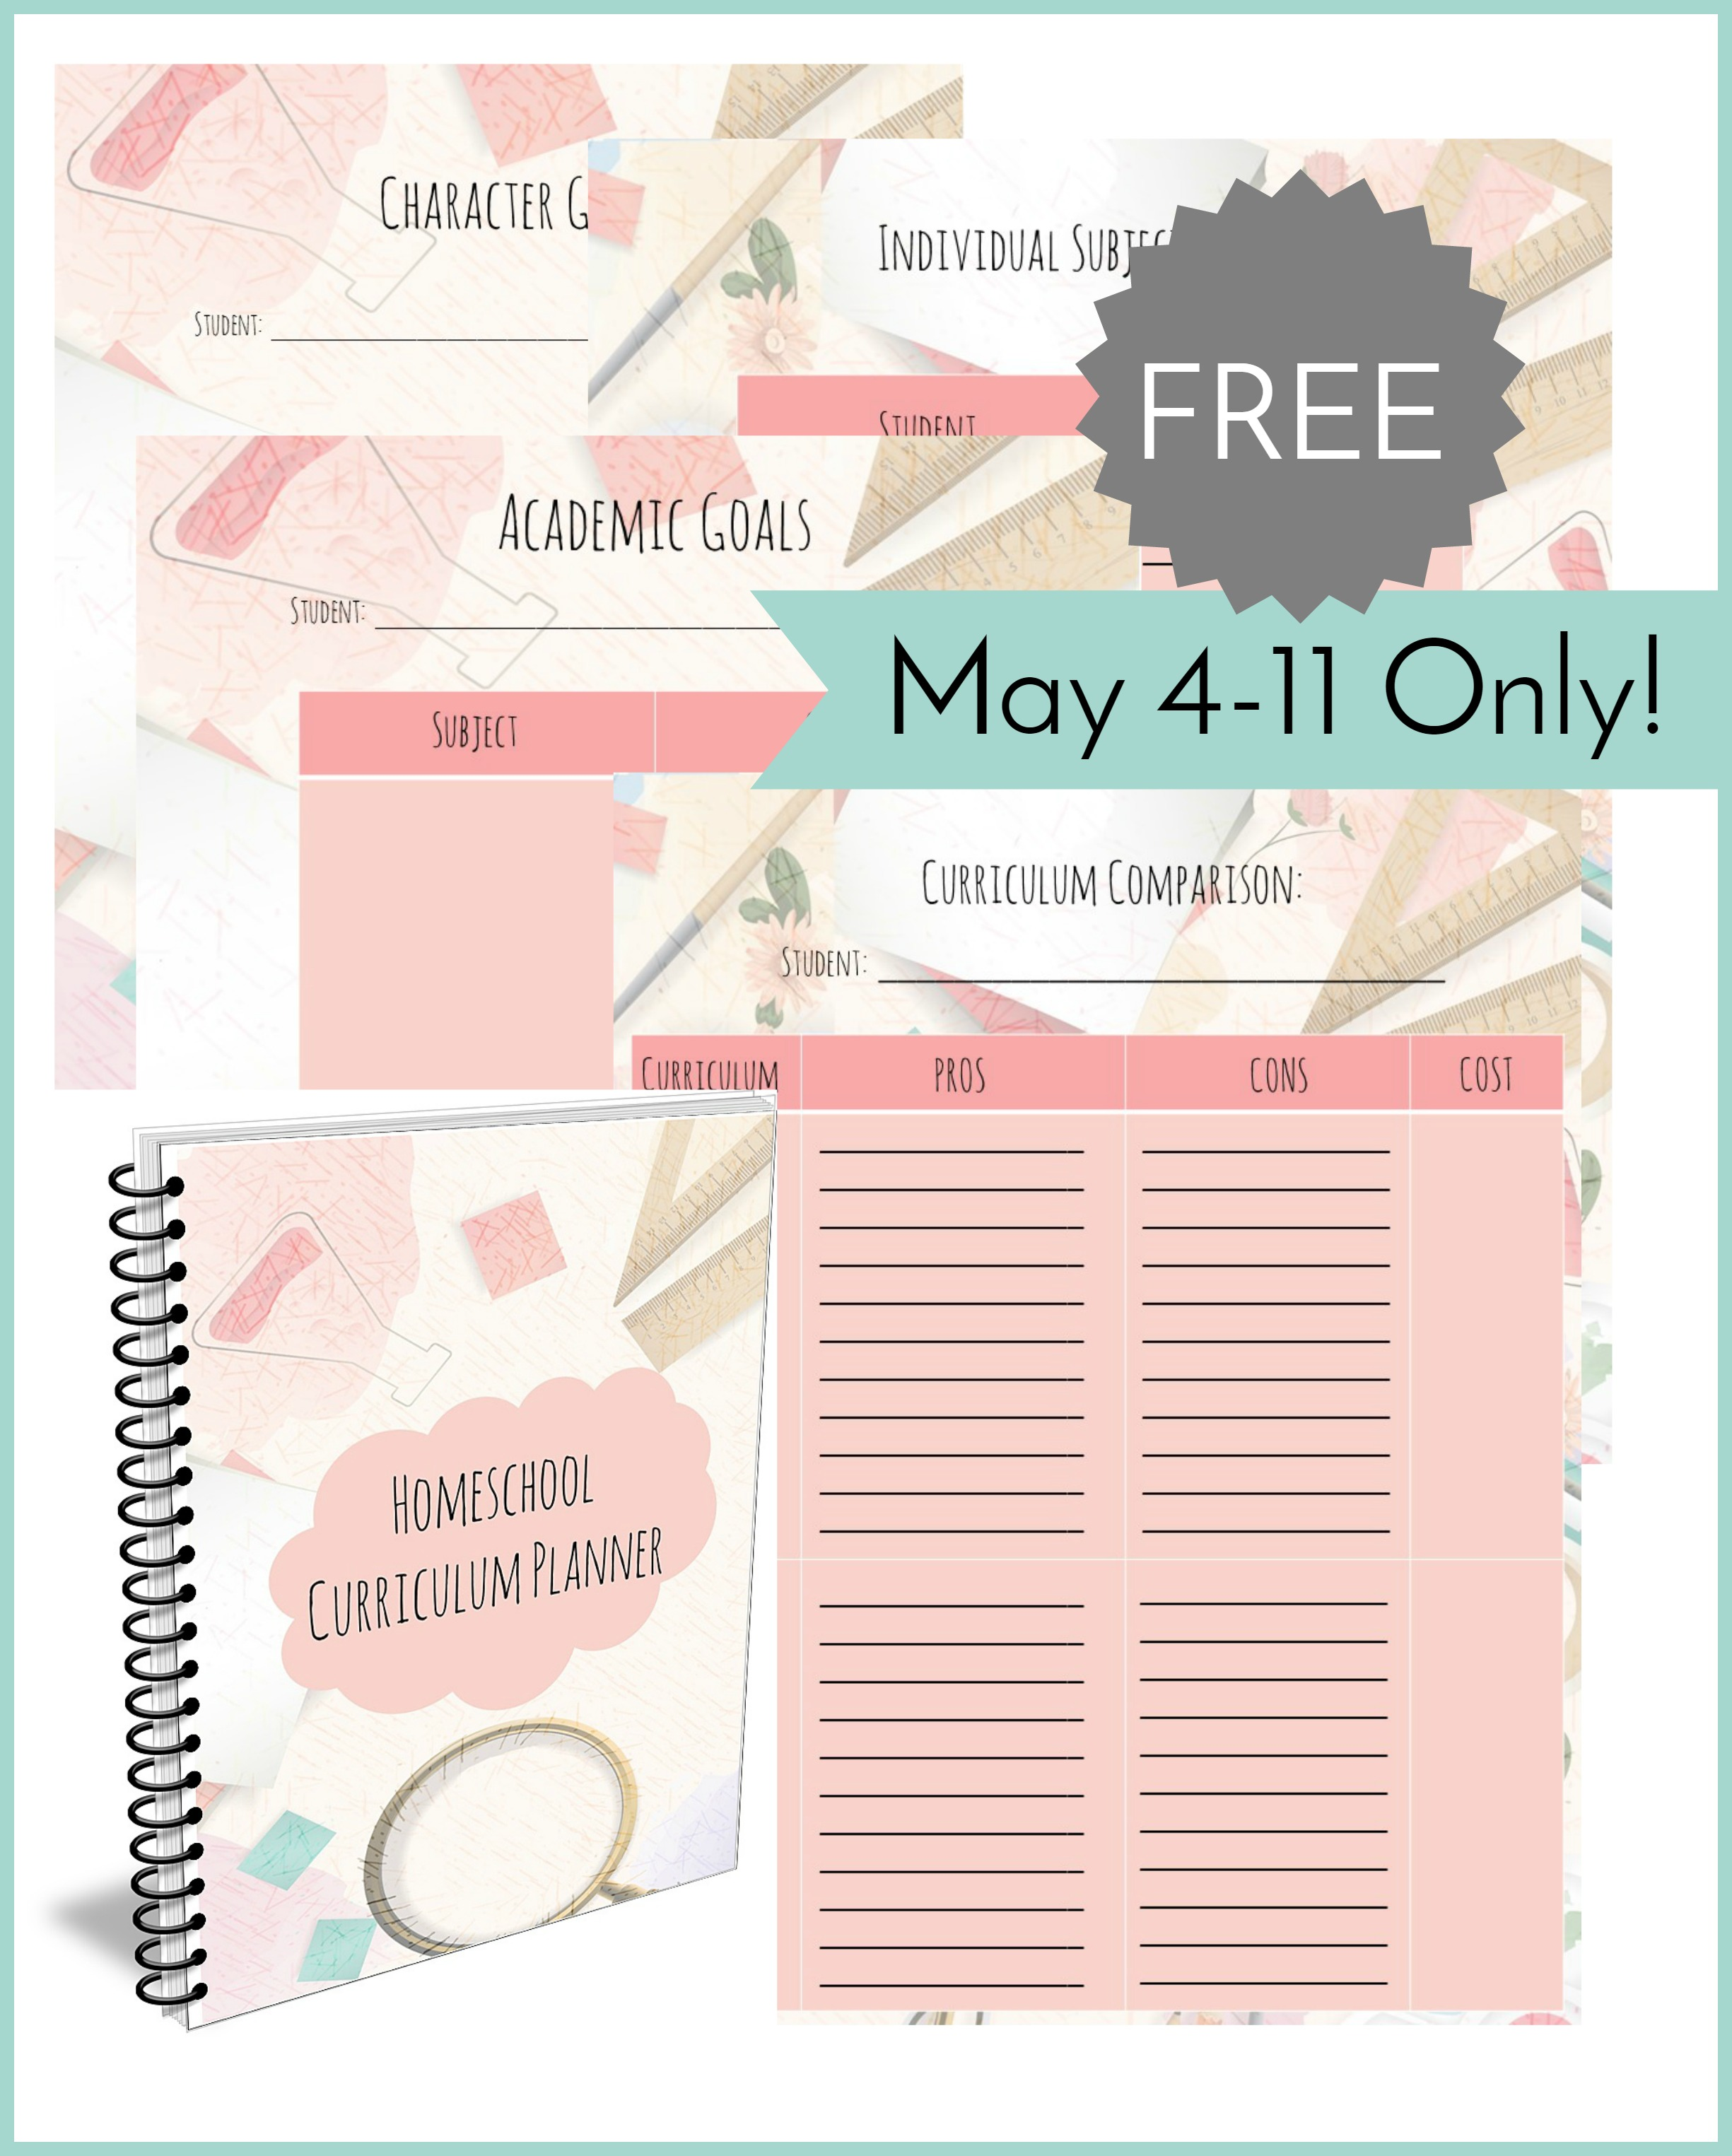 Download a free printable homeschool curriculum planner!